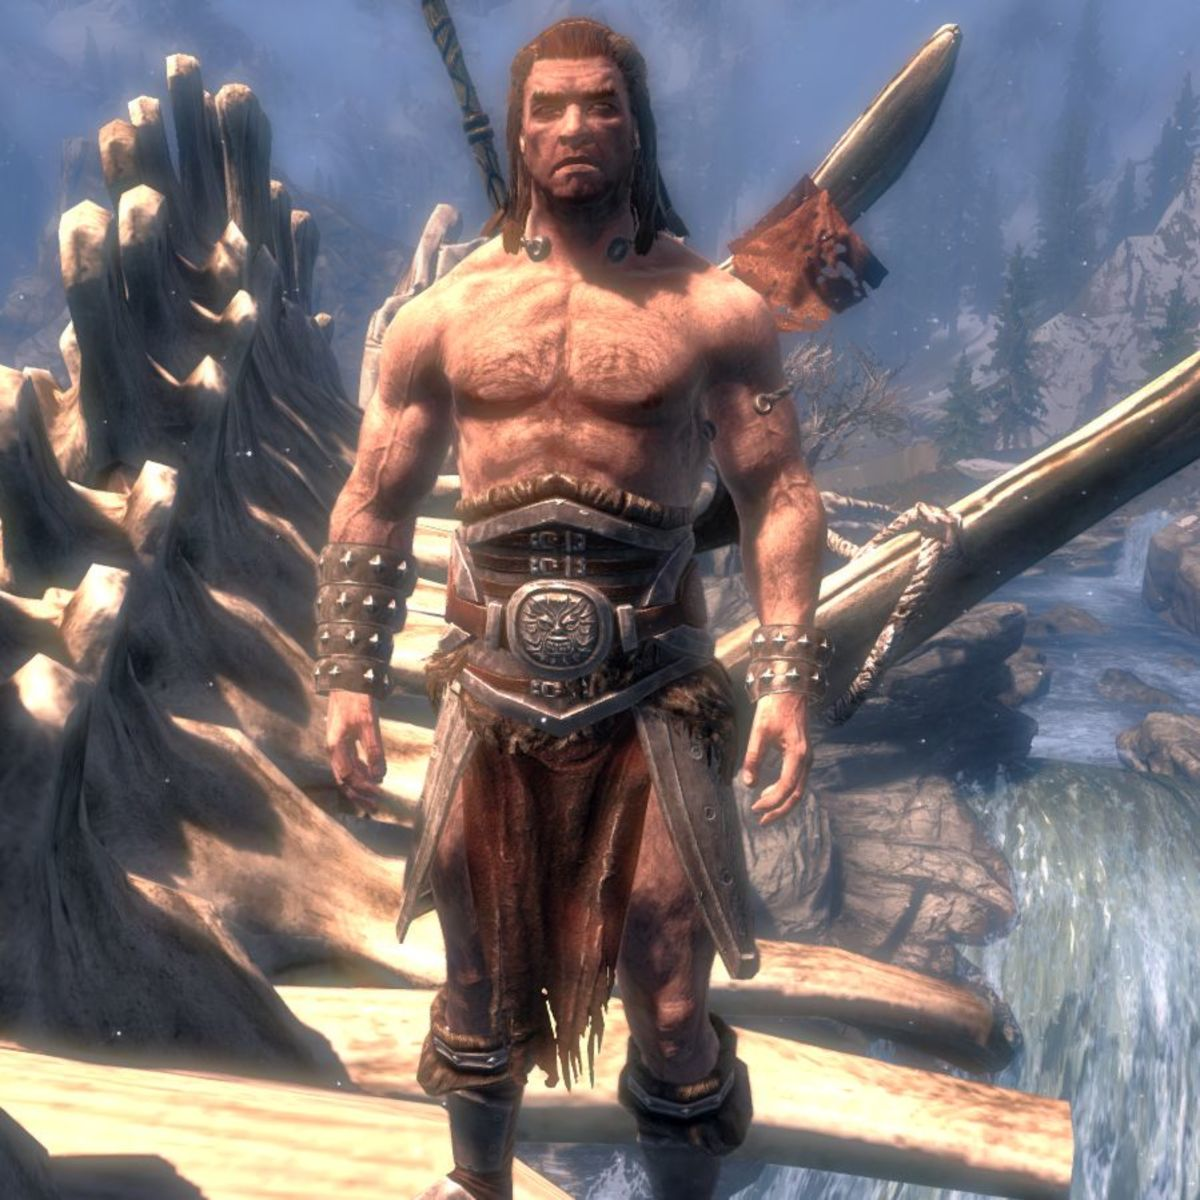 Barbarian at first sight.